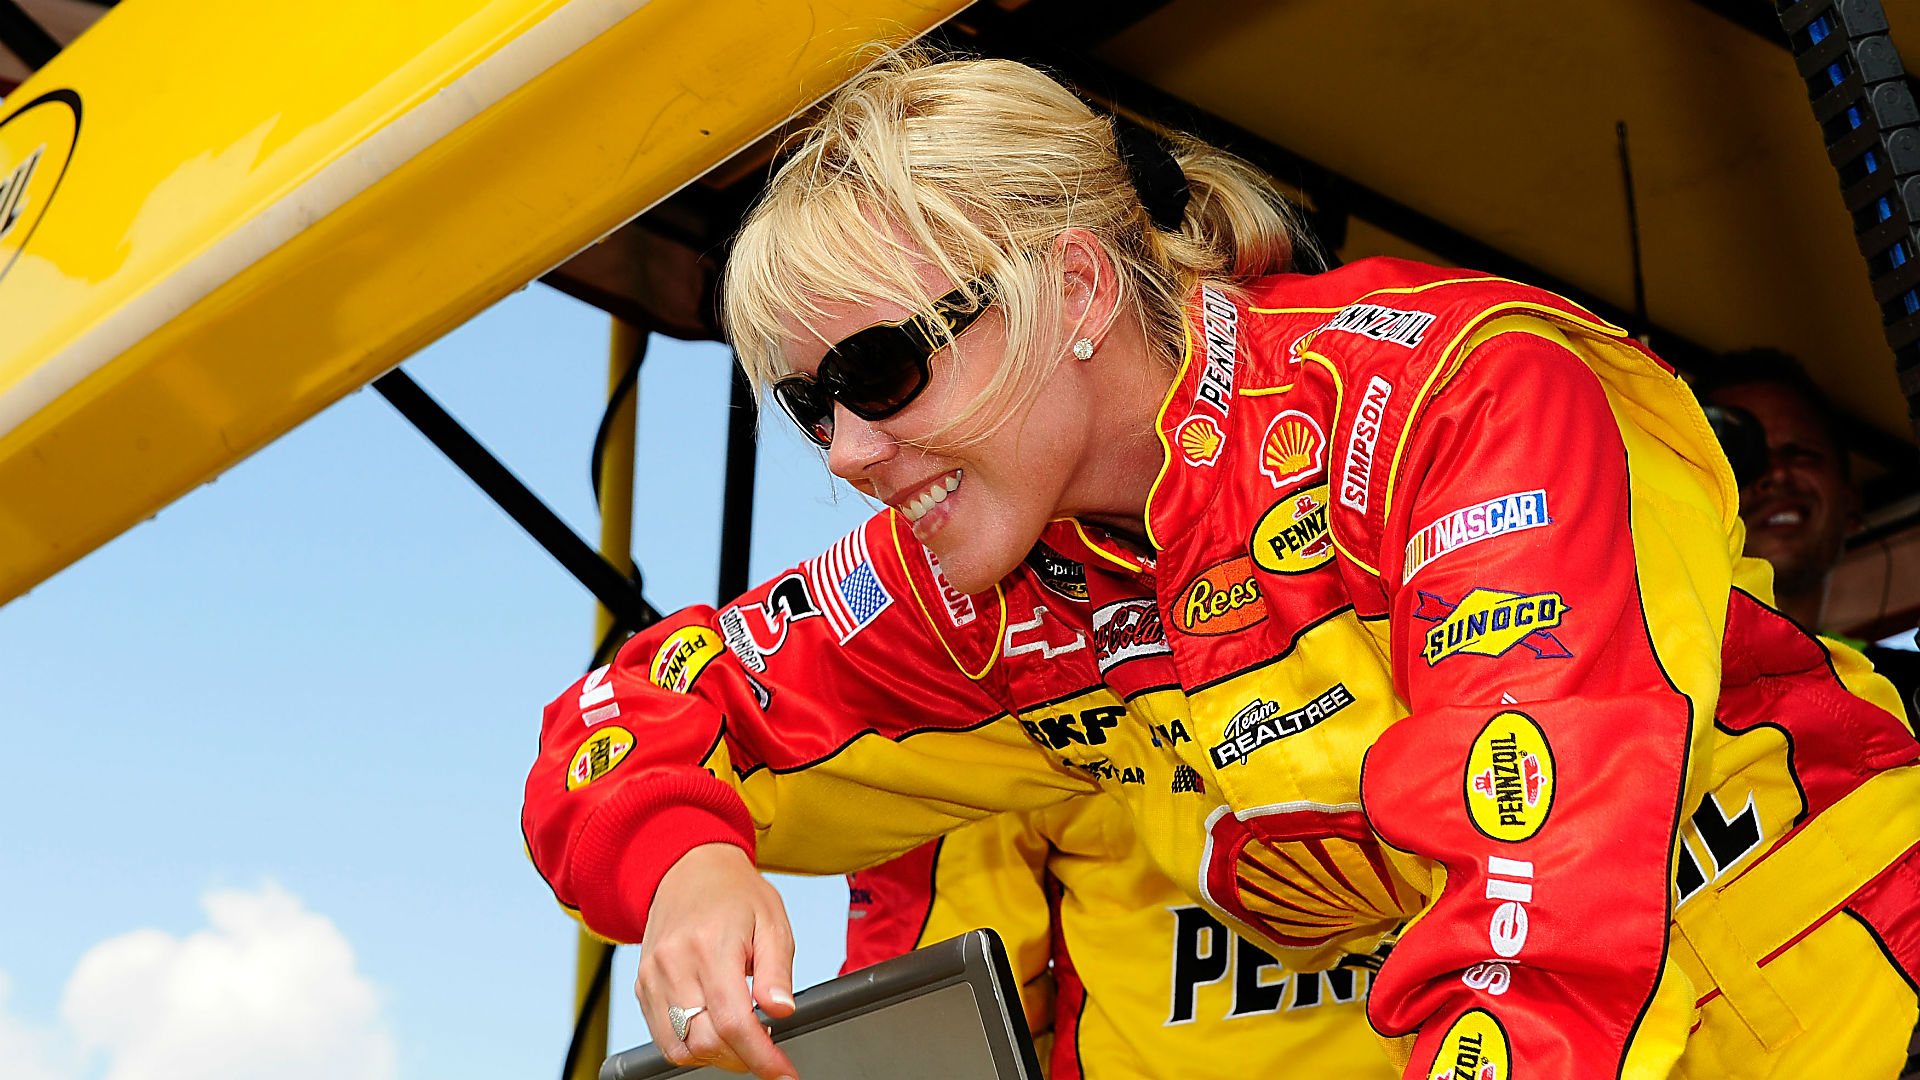 Who said that women can't drive and succeed? DeLana HARVICK DID!!!